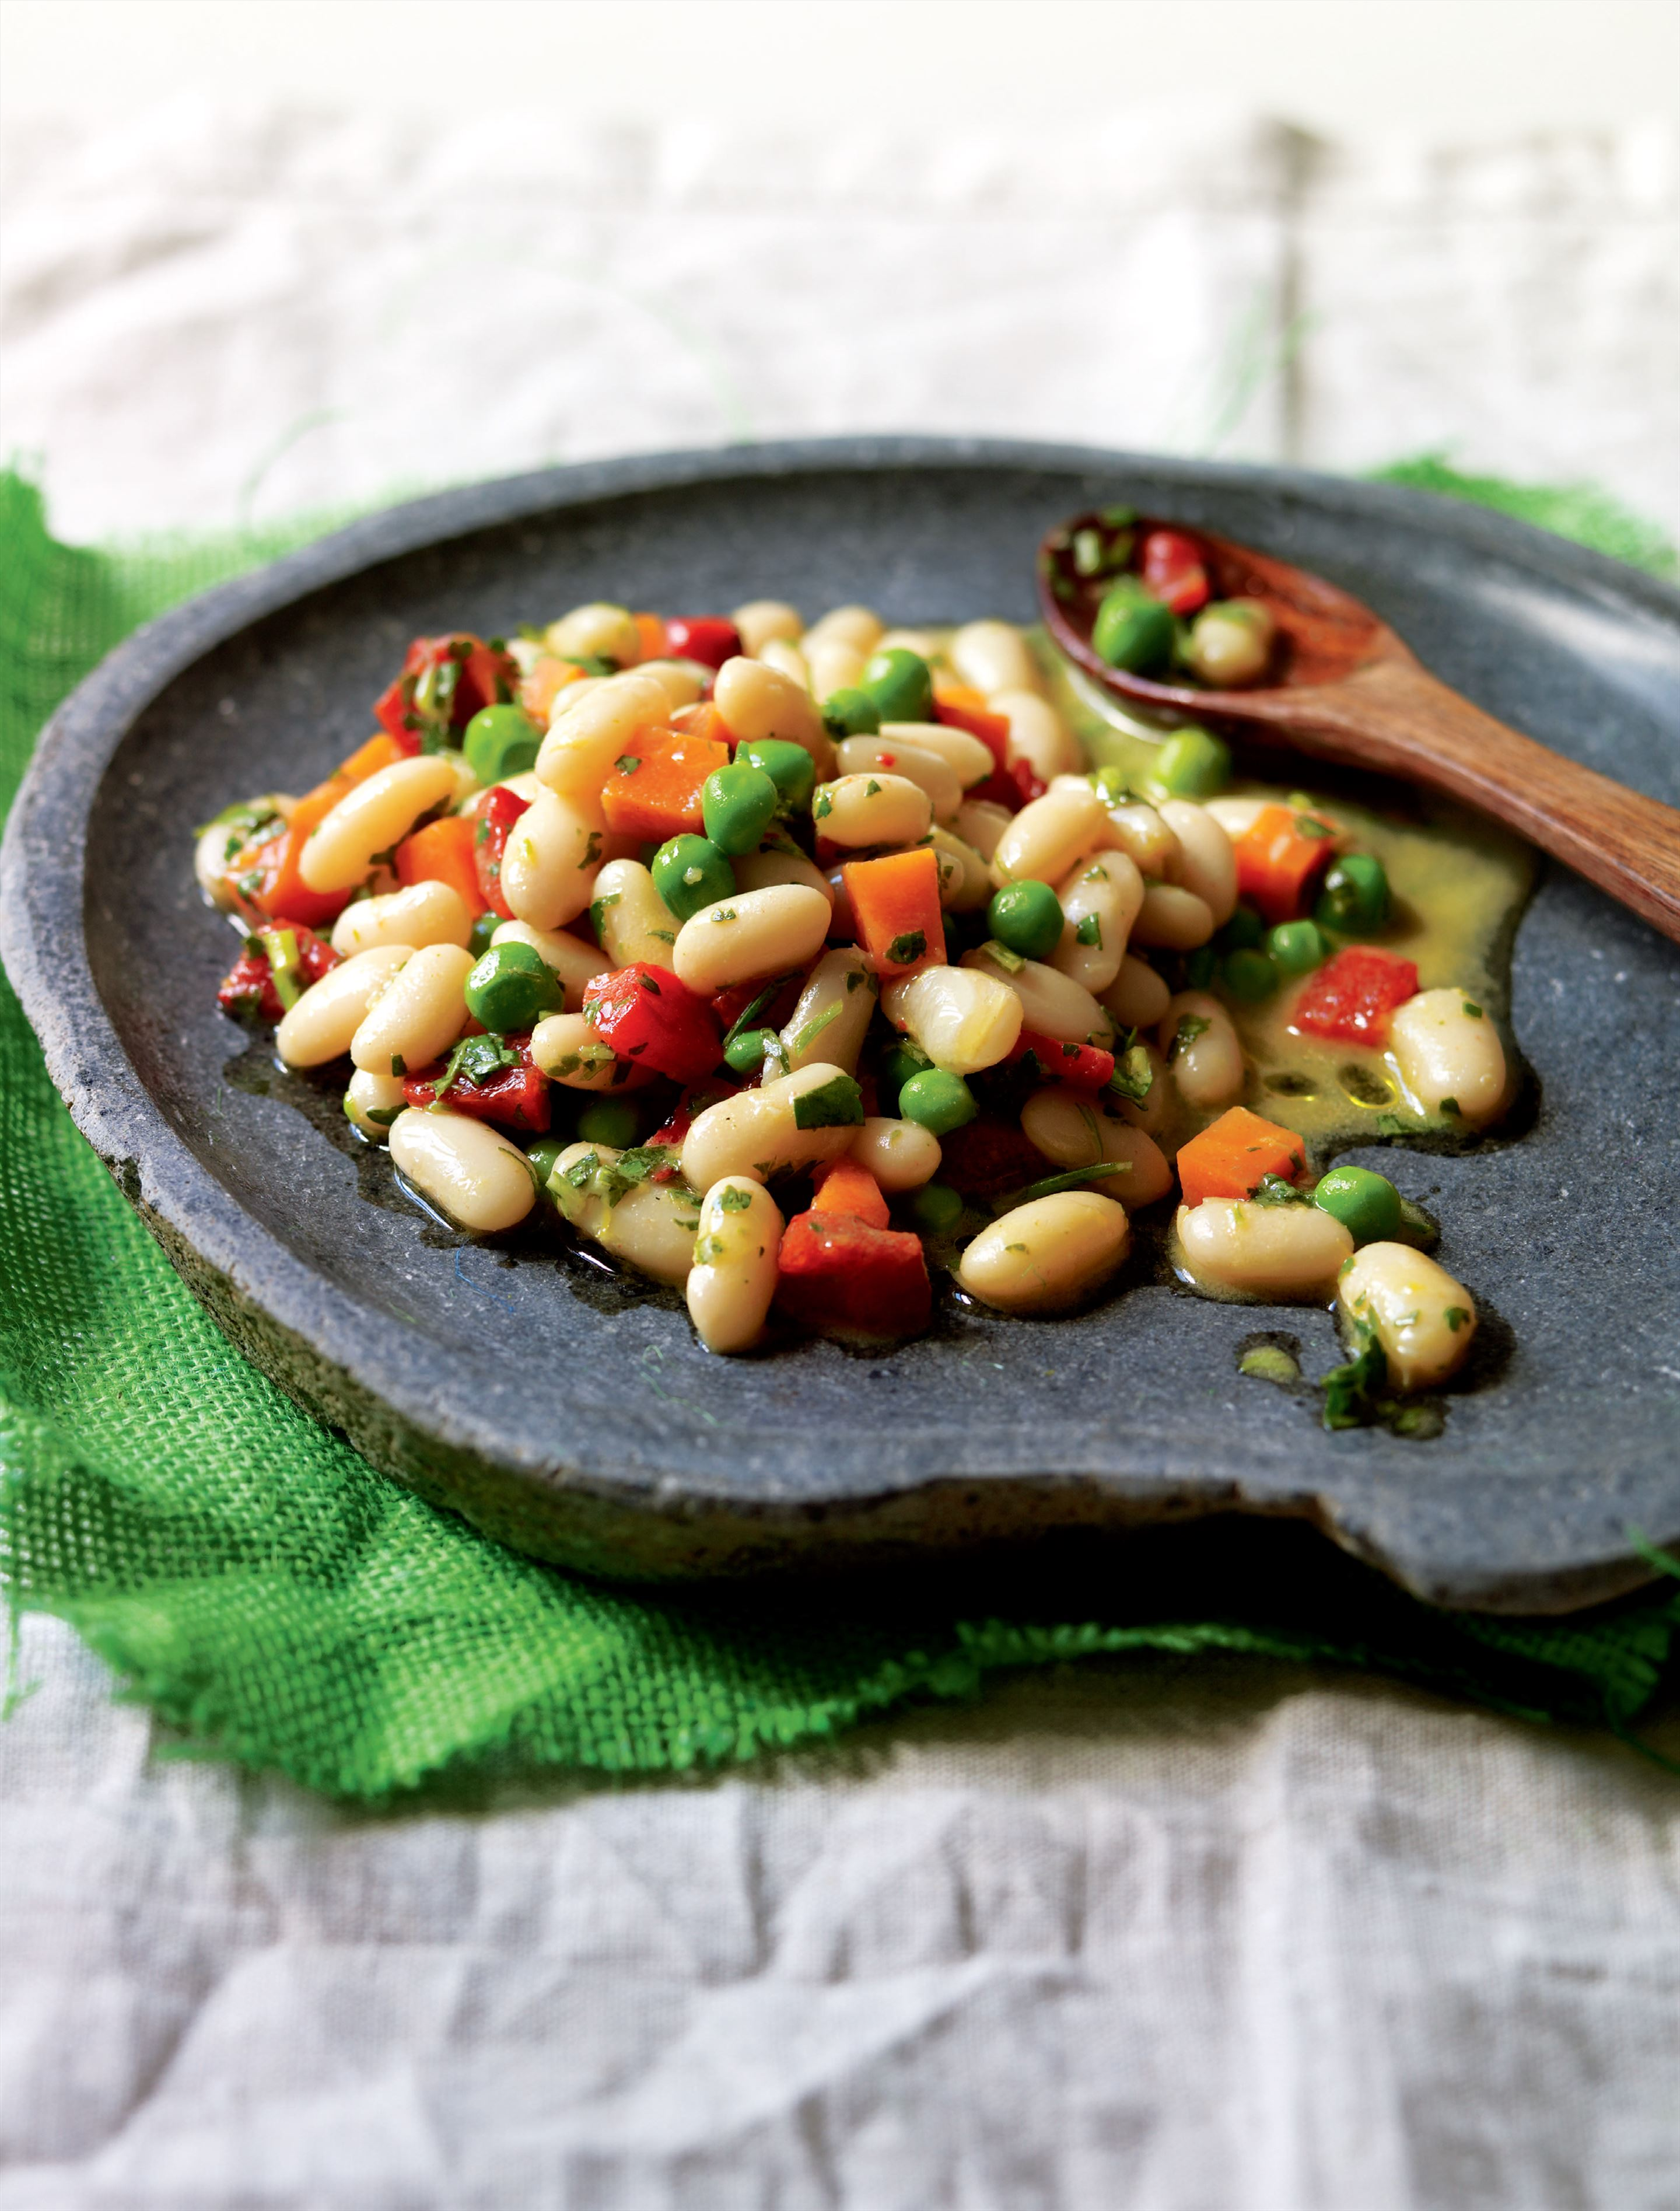 Bean salad with lemon and parsley dressing